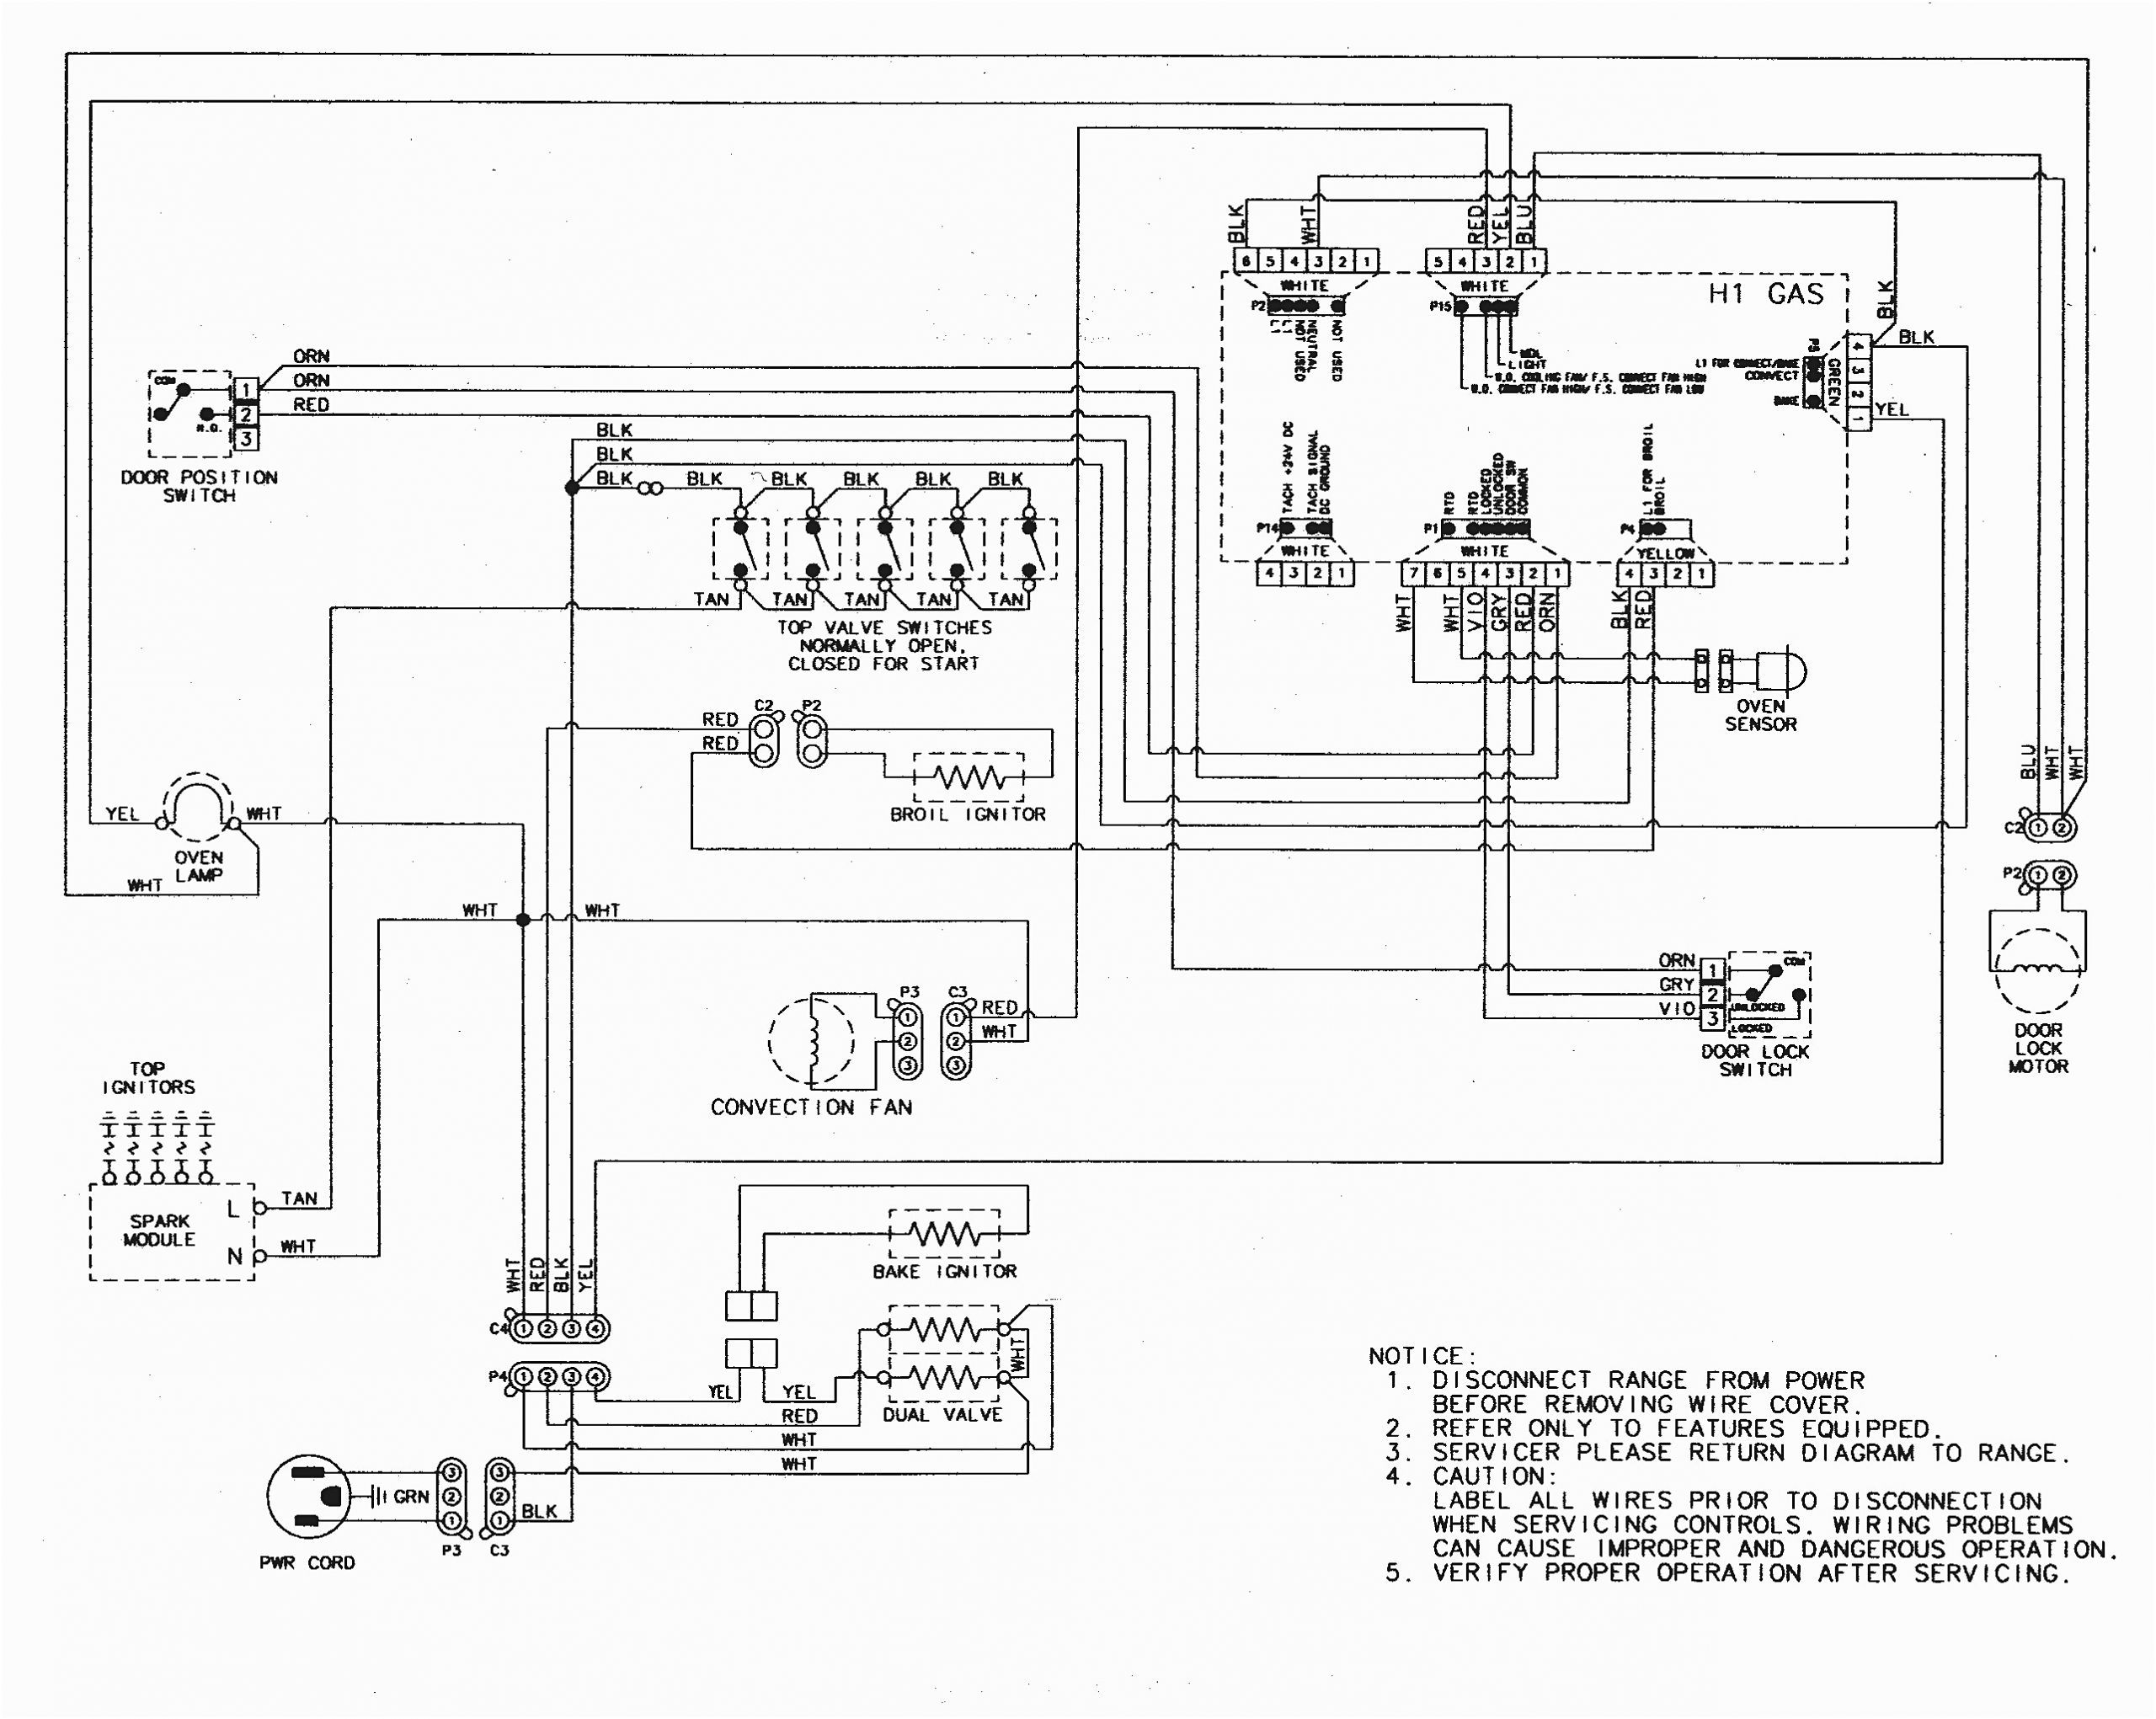 blodgett ef 111 wiring diagram blod t oven schematics wire center u2022 rh statsrsk co blod t oven troubleshooting blod t convection oven parts manual 6h jpg